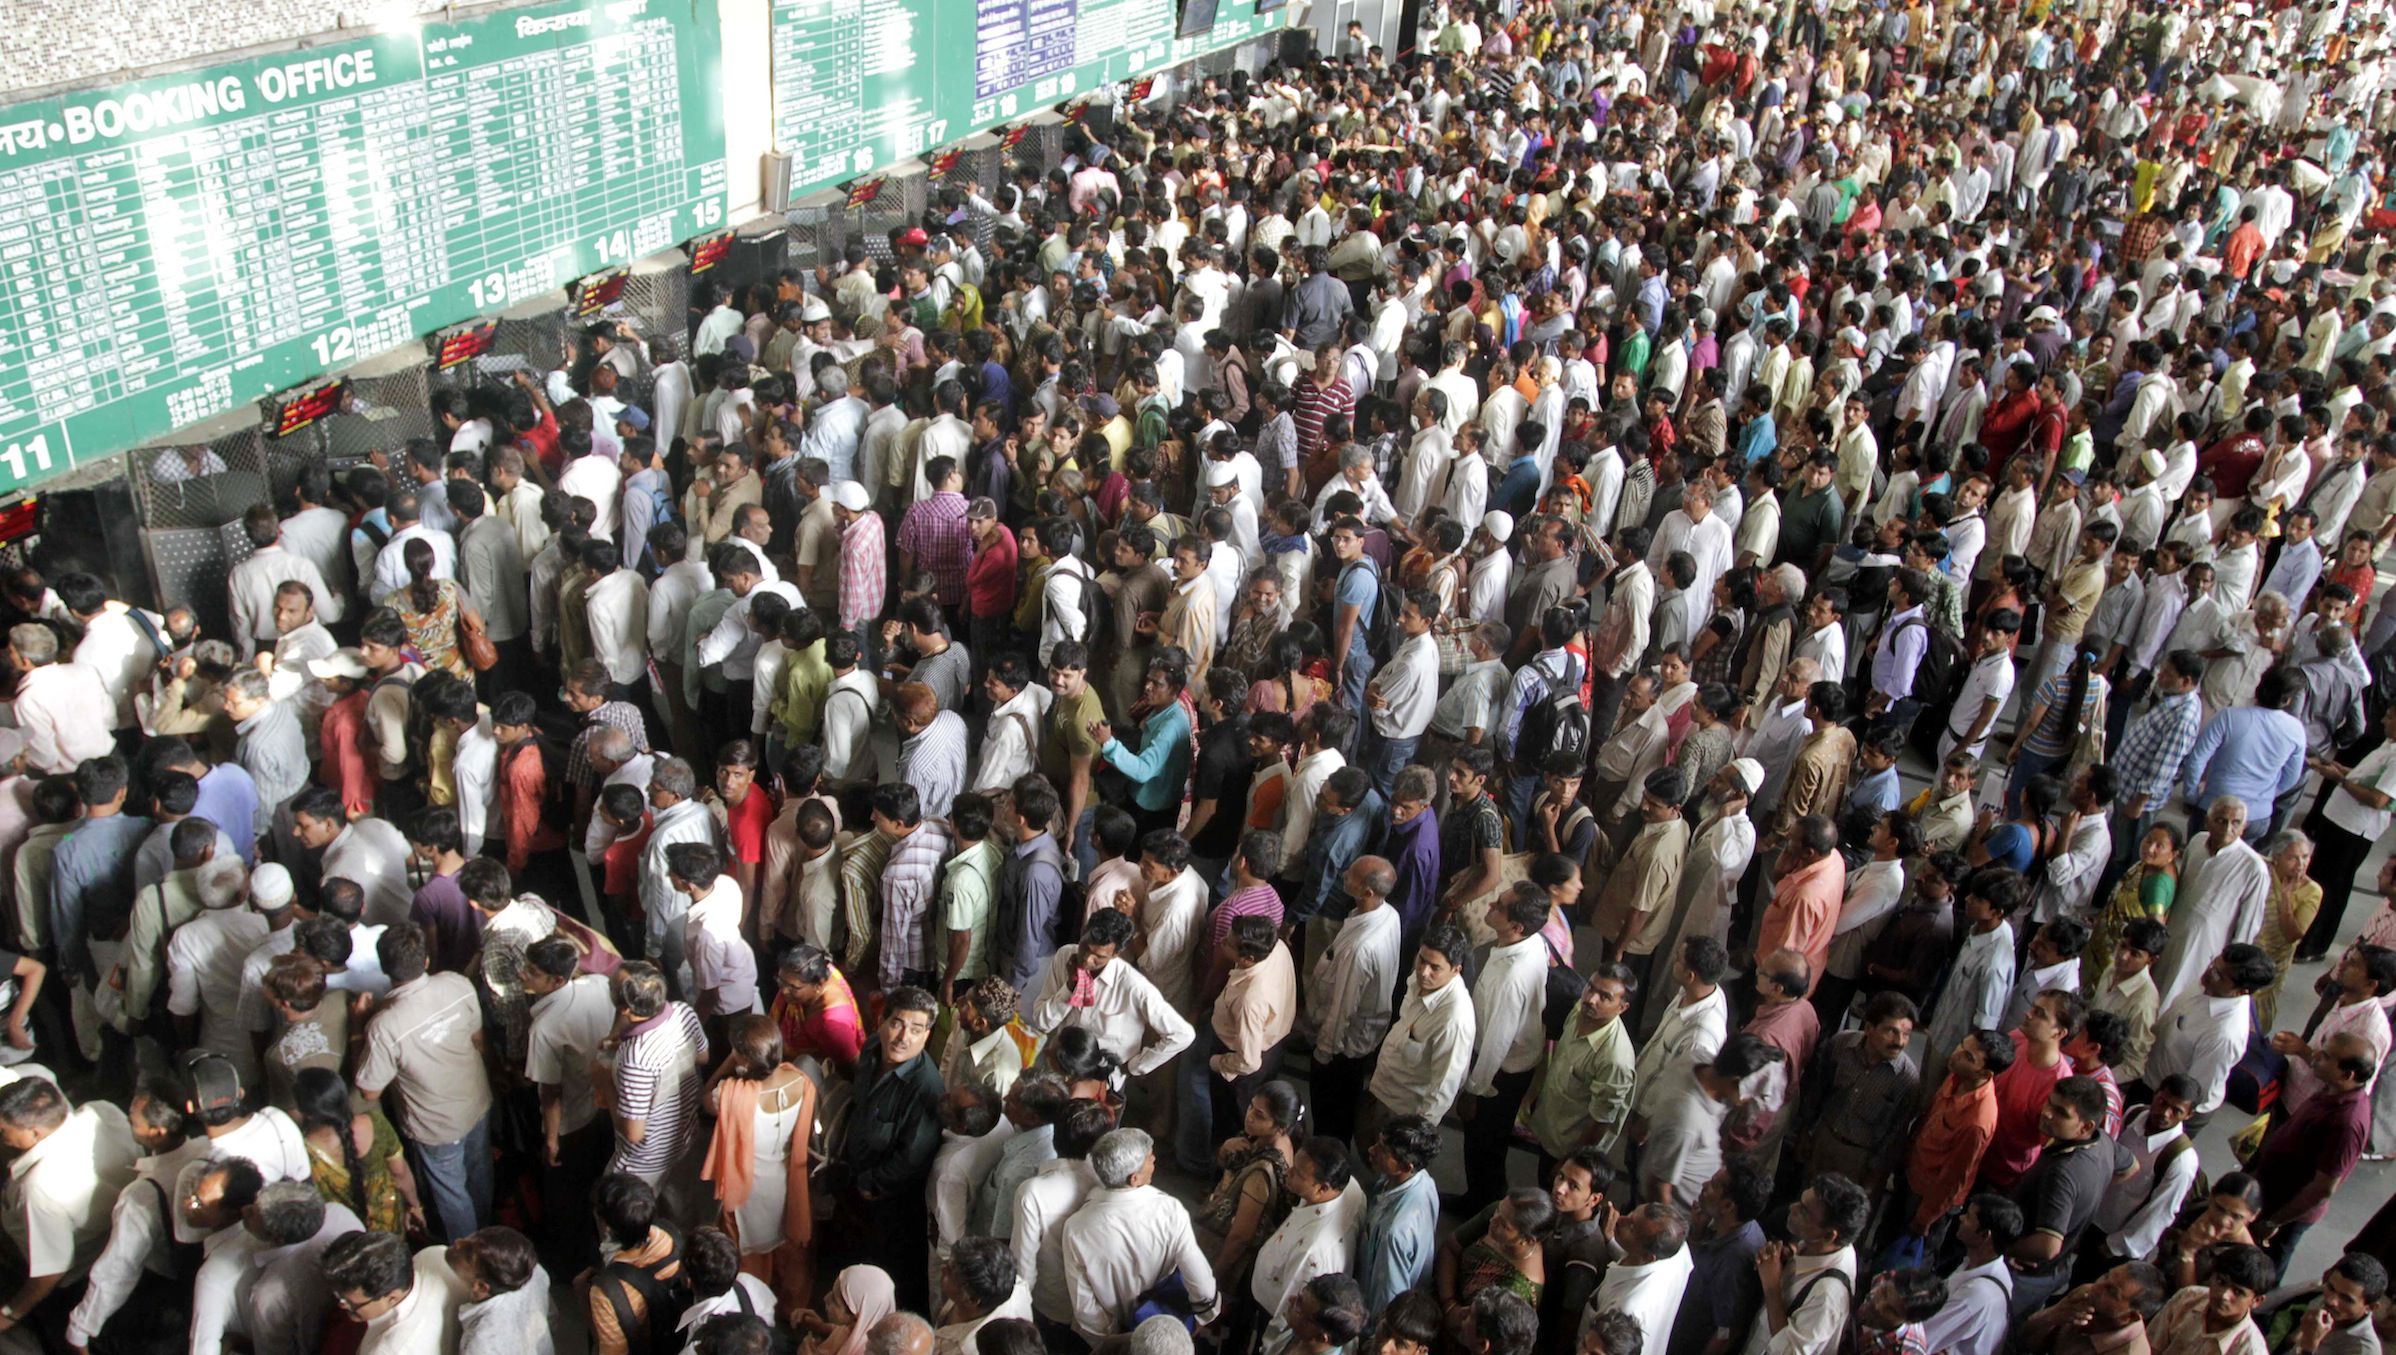 Indians crowd ticket counters at the railway station in Ahmadabad, India, Sunday, May 8, 2011. People crowded the railway station for tickets to get away for the summer as school vacations begin May 9. (AP Photo/Ajit Solanki)